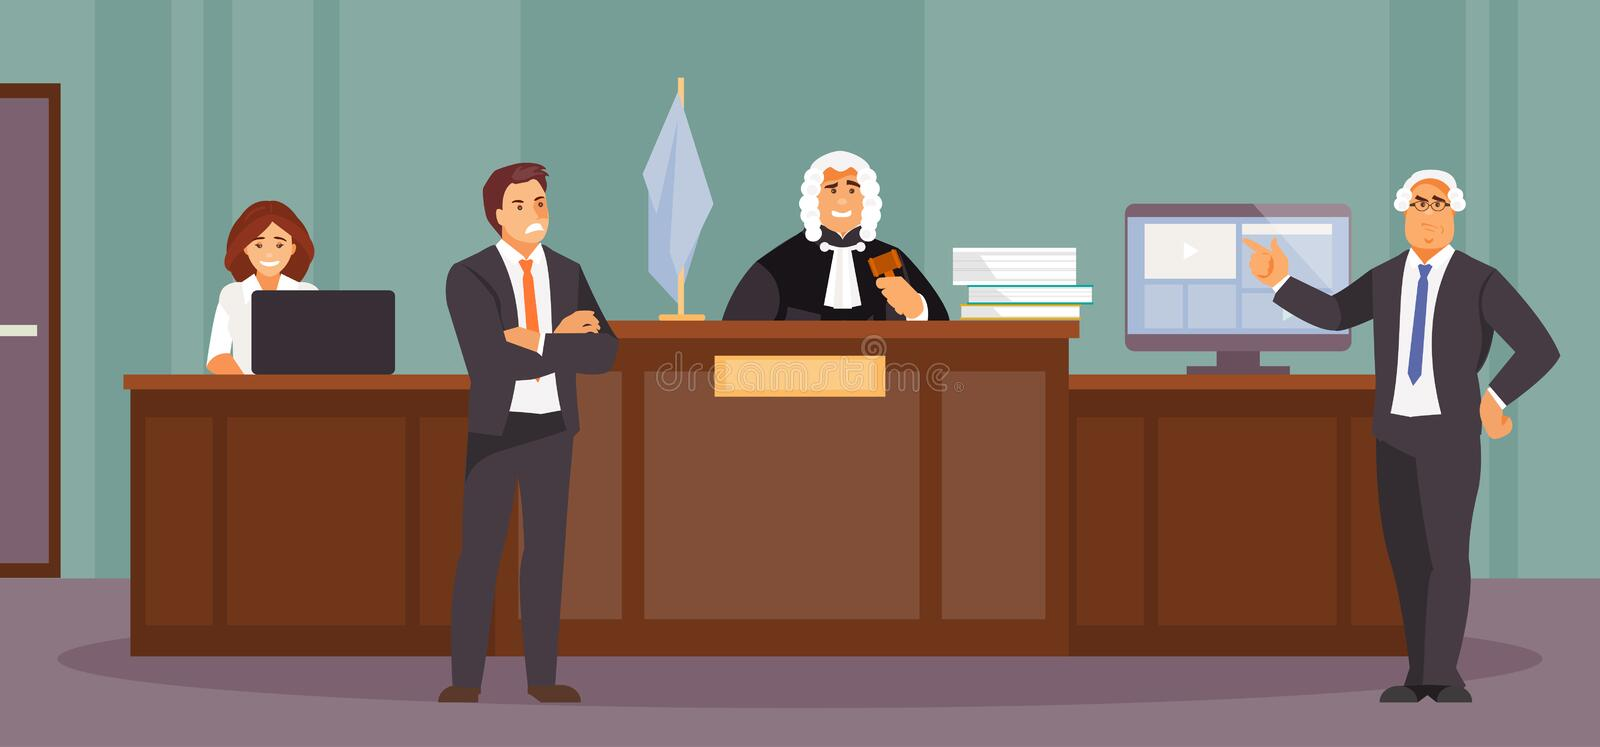 Courtroom session vector royalty free illustration